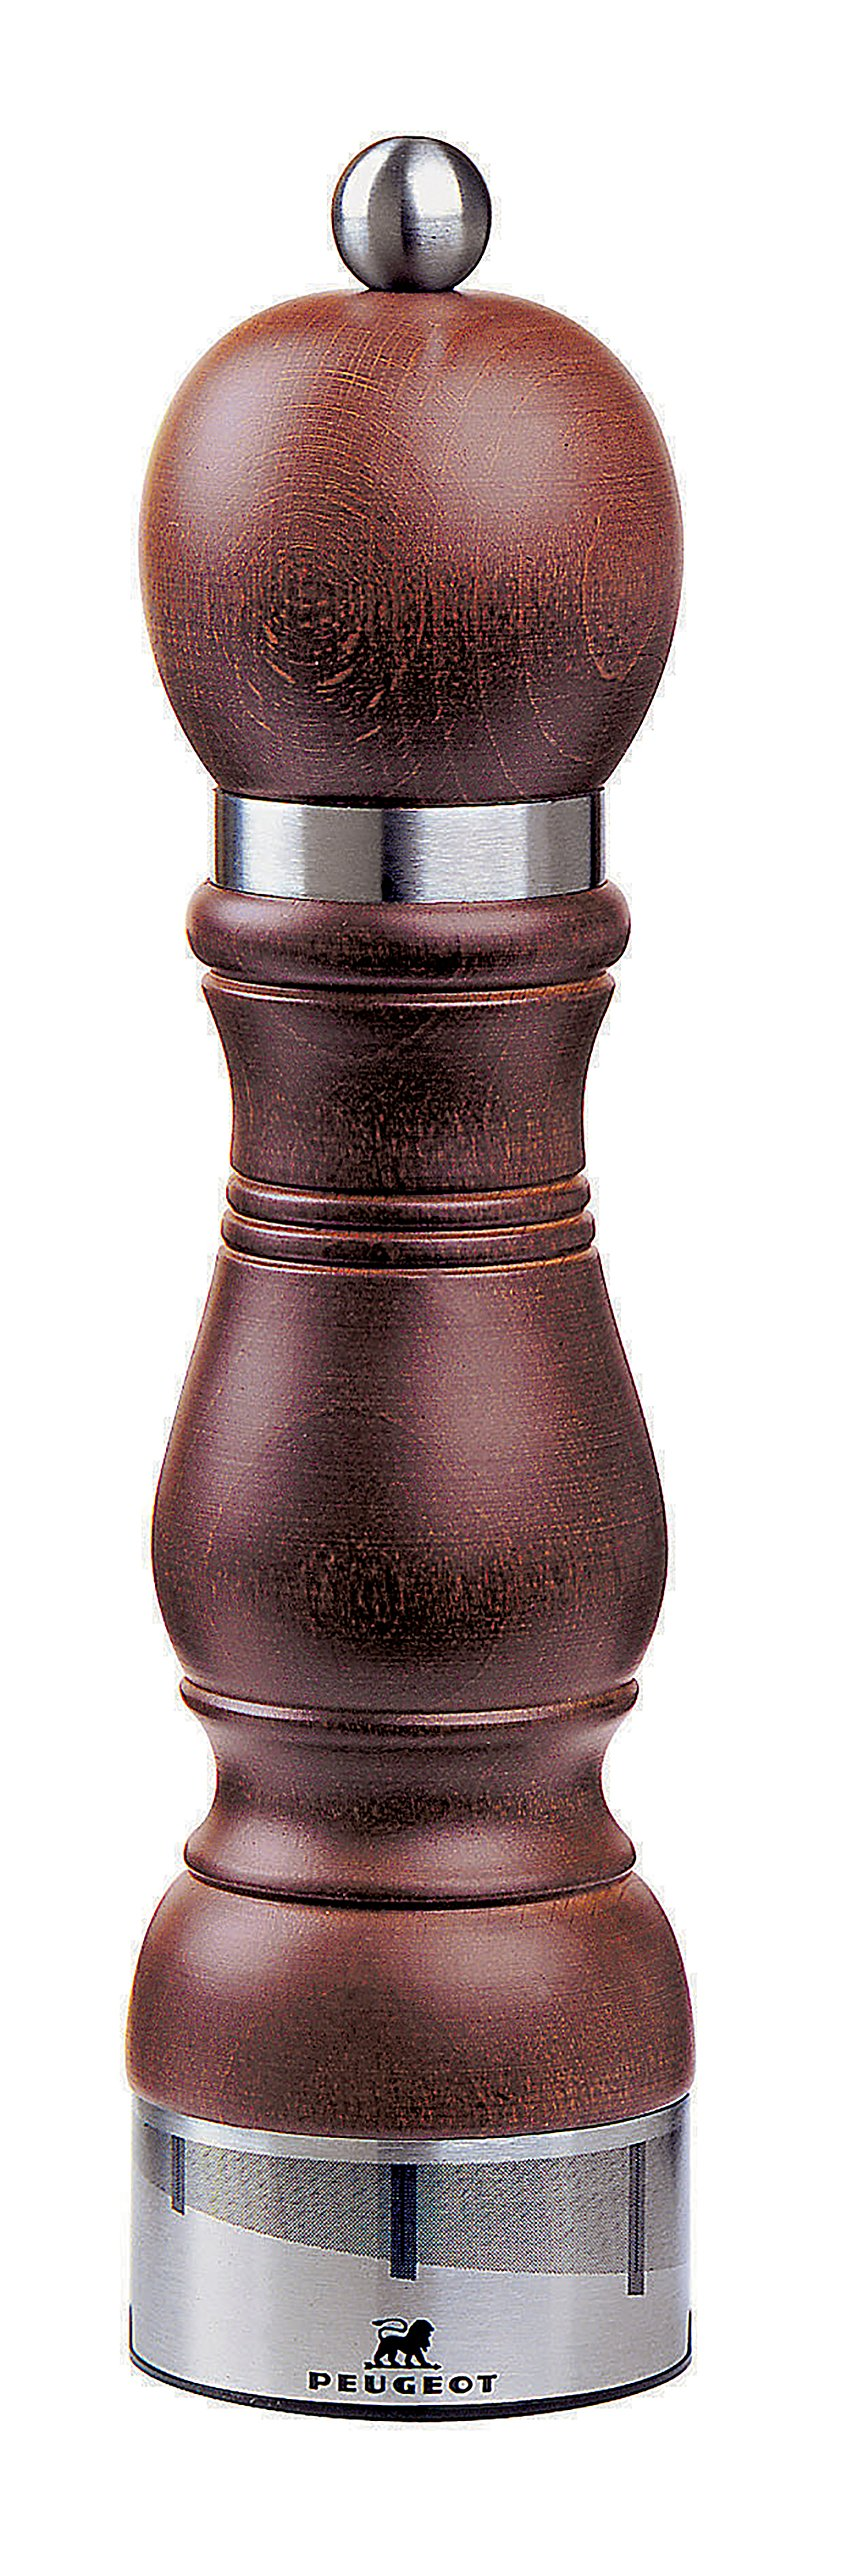 Pepper Mill Peugeot - Chateauneuf